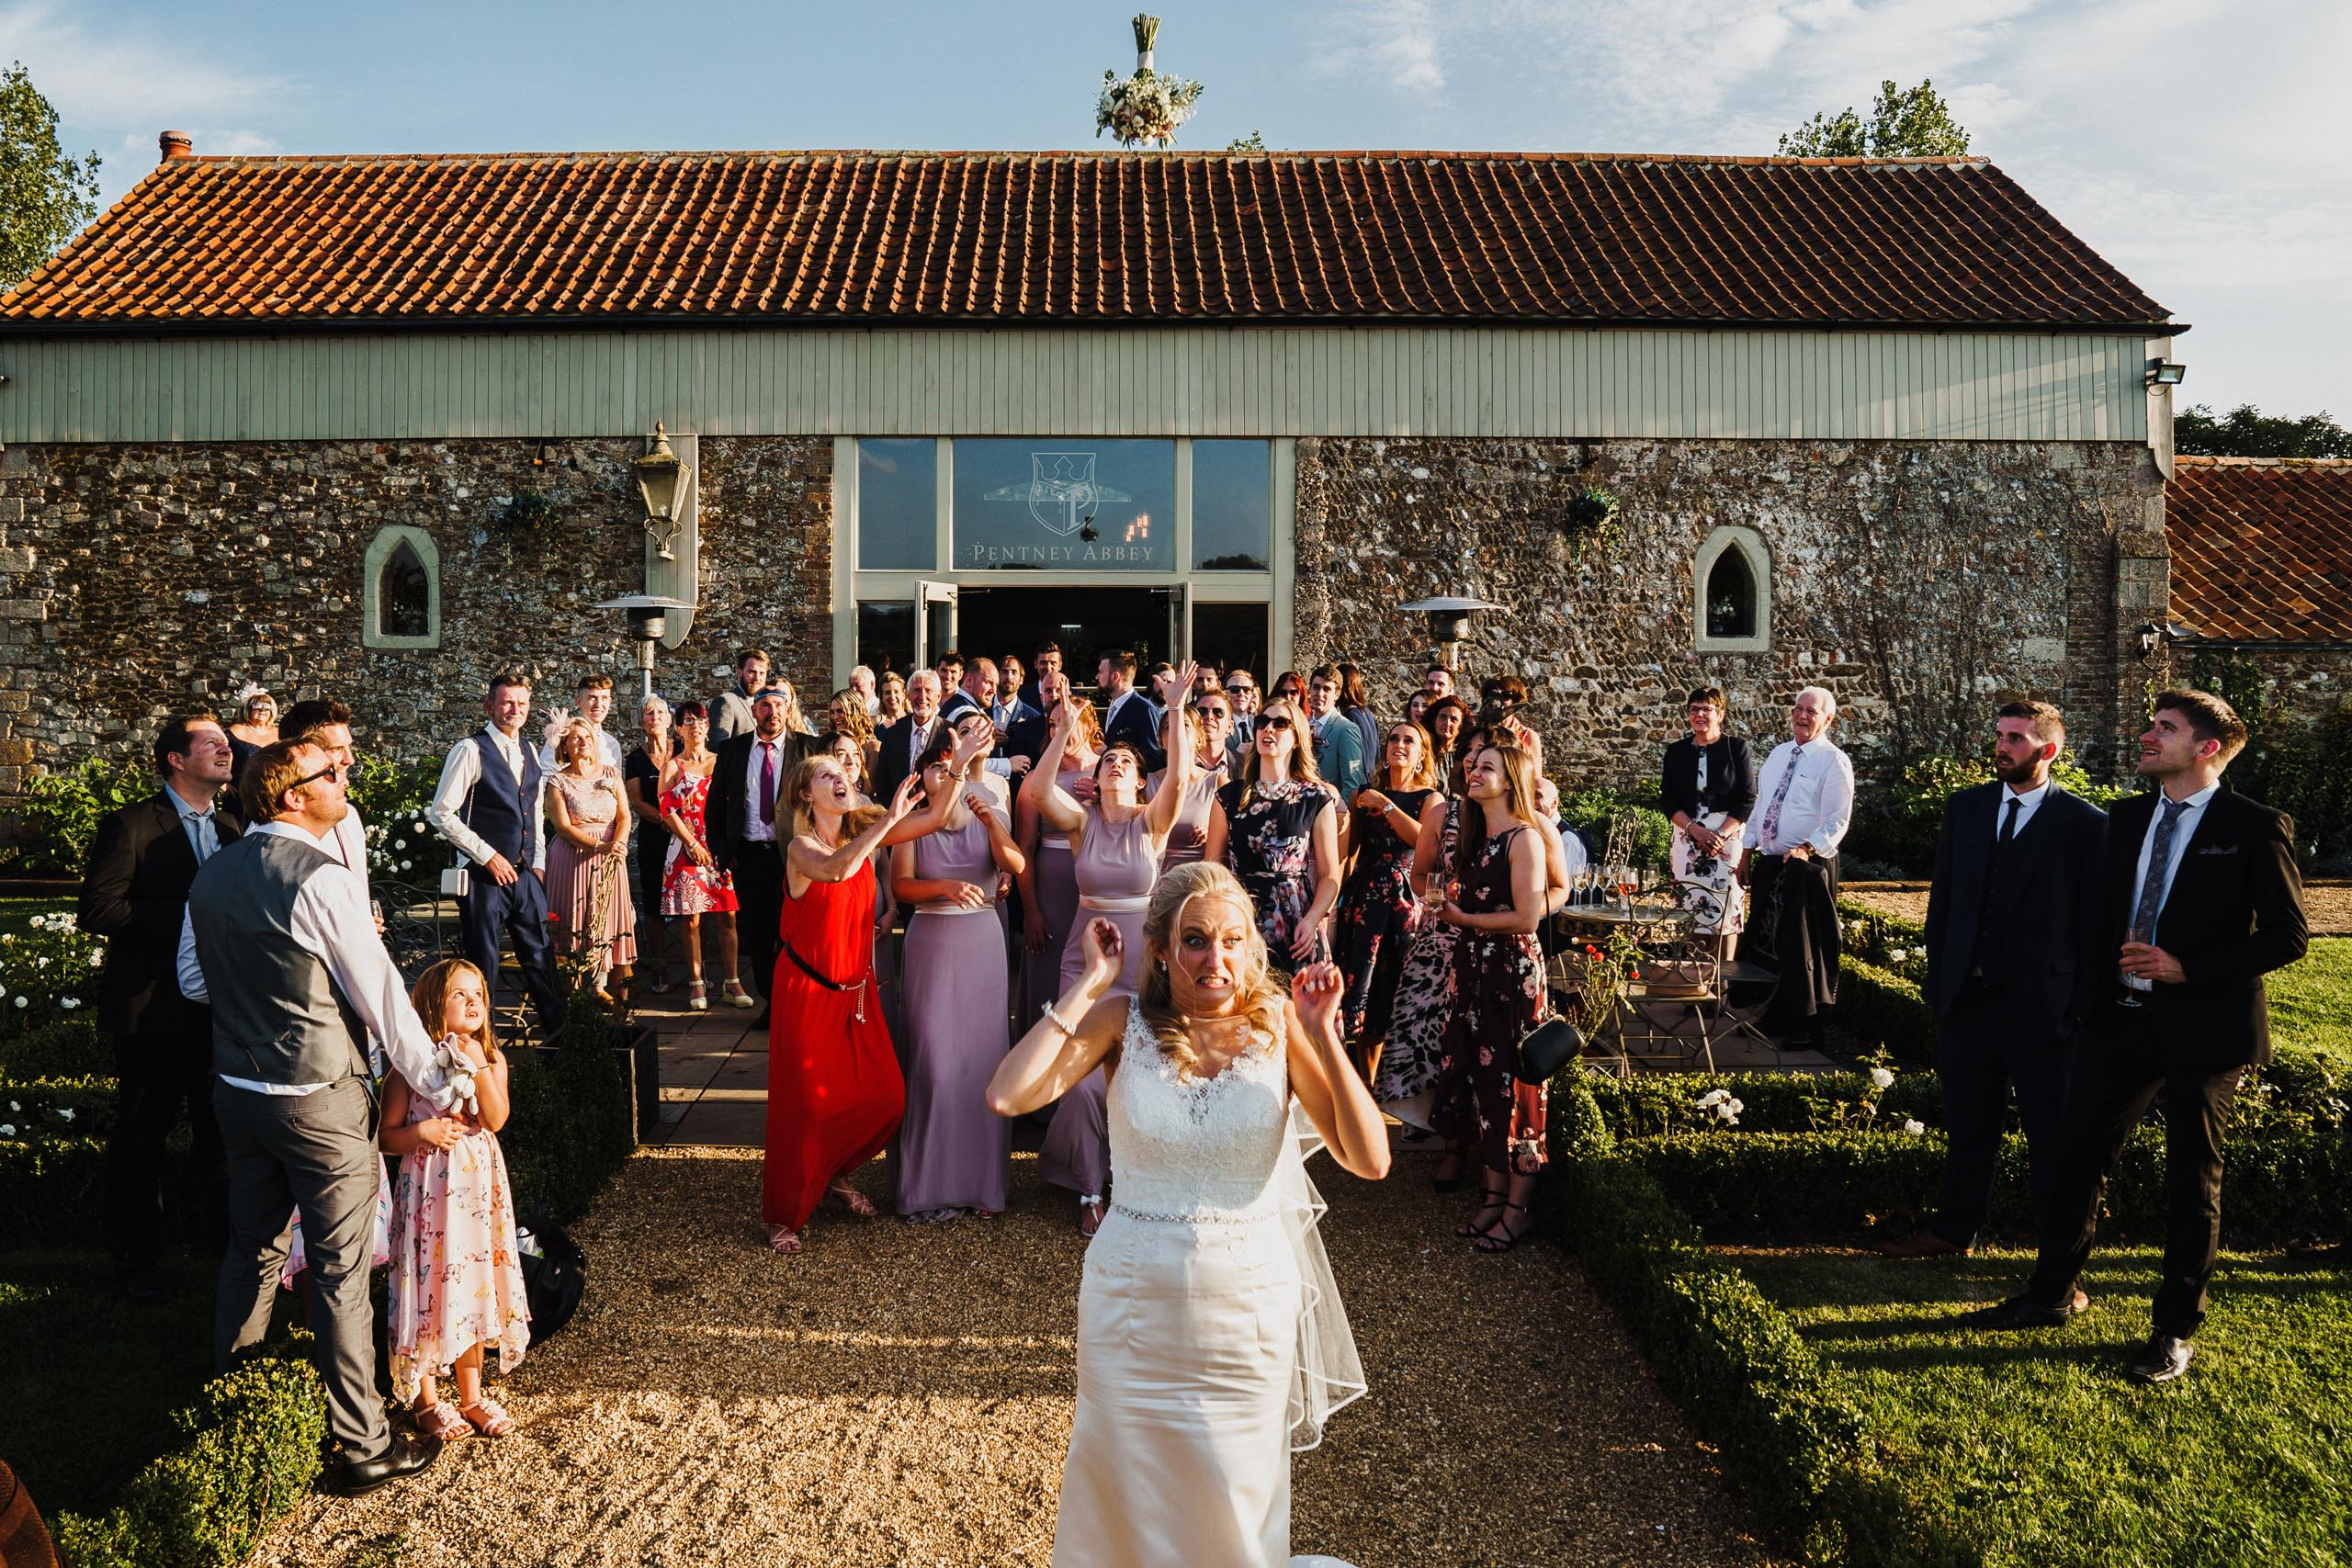 Bride tosses her bouquet outside Pentney Abbey